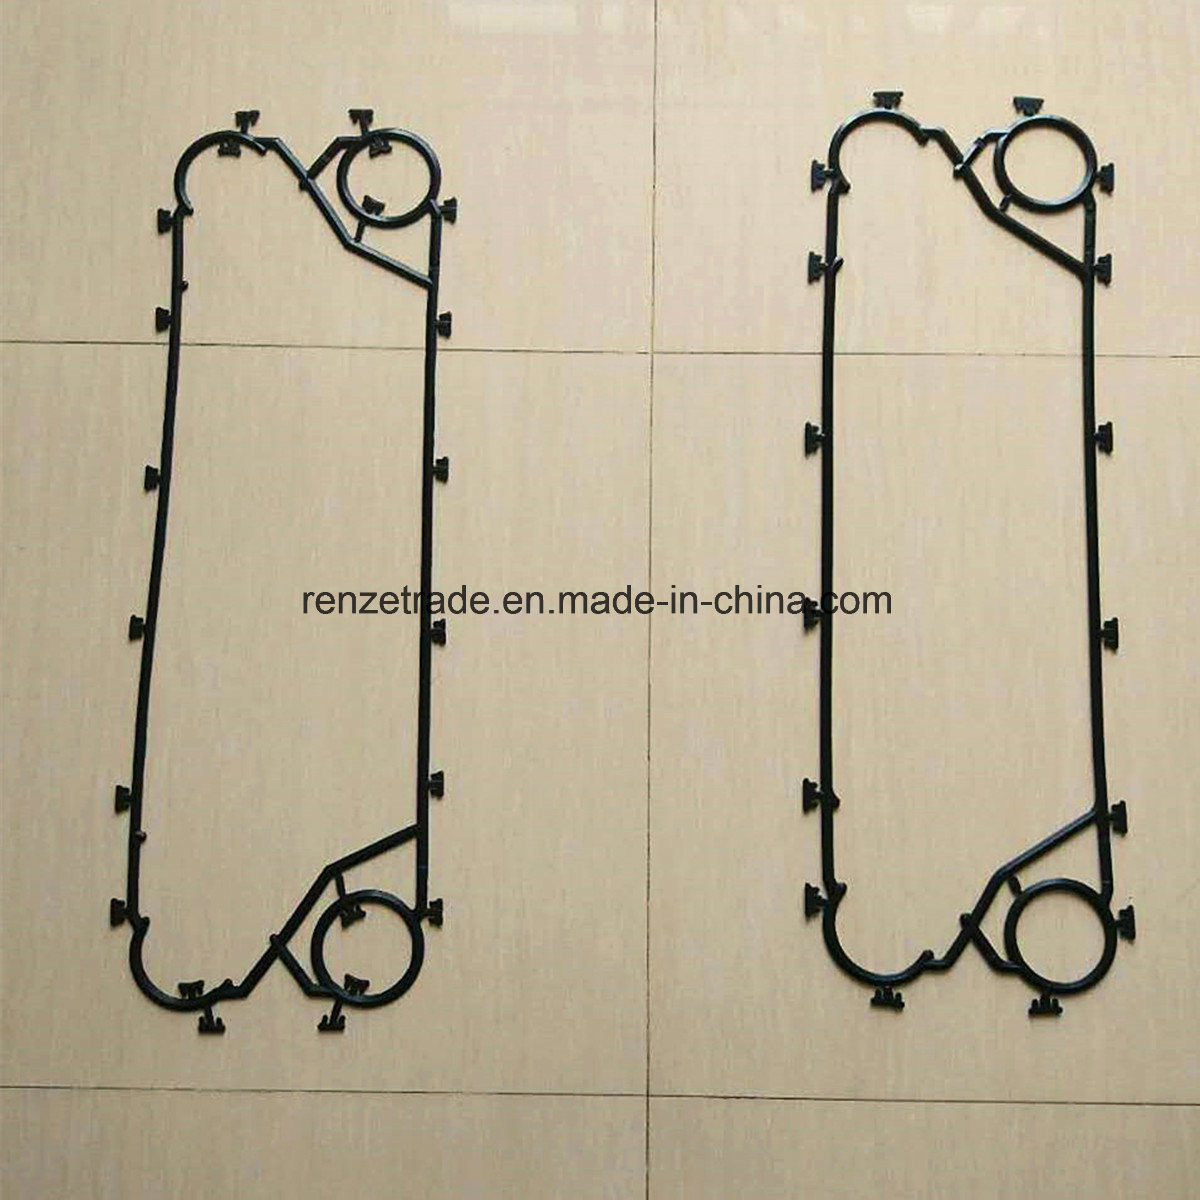 EPDM Flow Gasket for Plate Heat Exchanger Replacement for Alfa Laval Phe